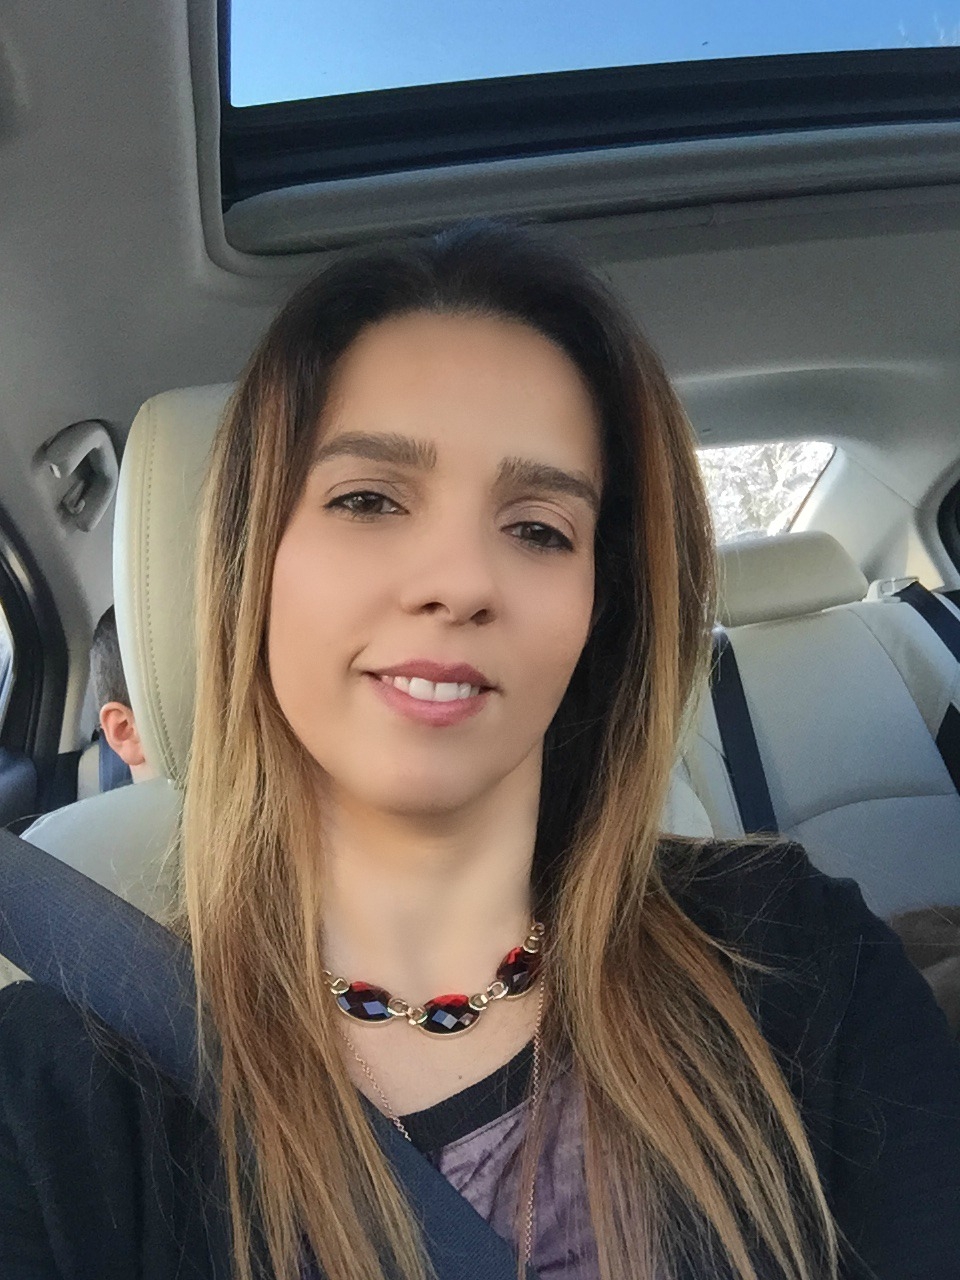 Me in the car trendy picf